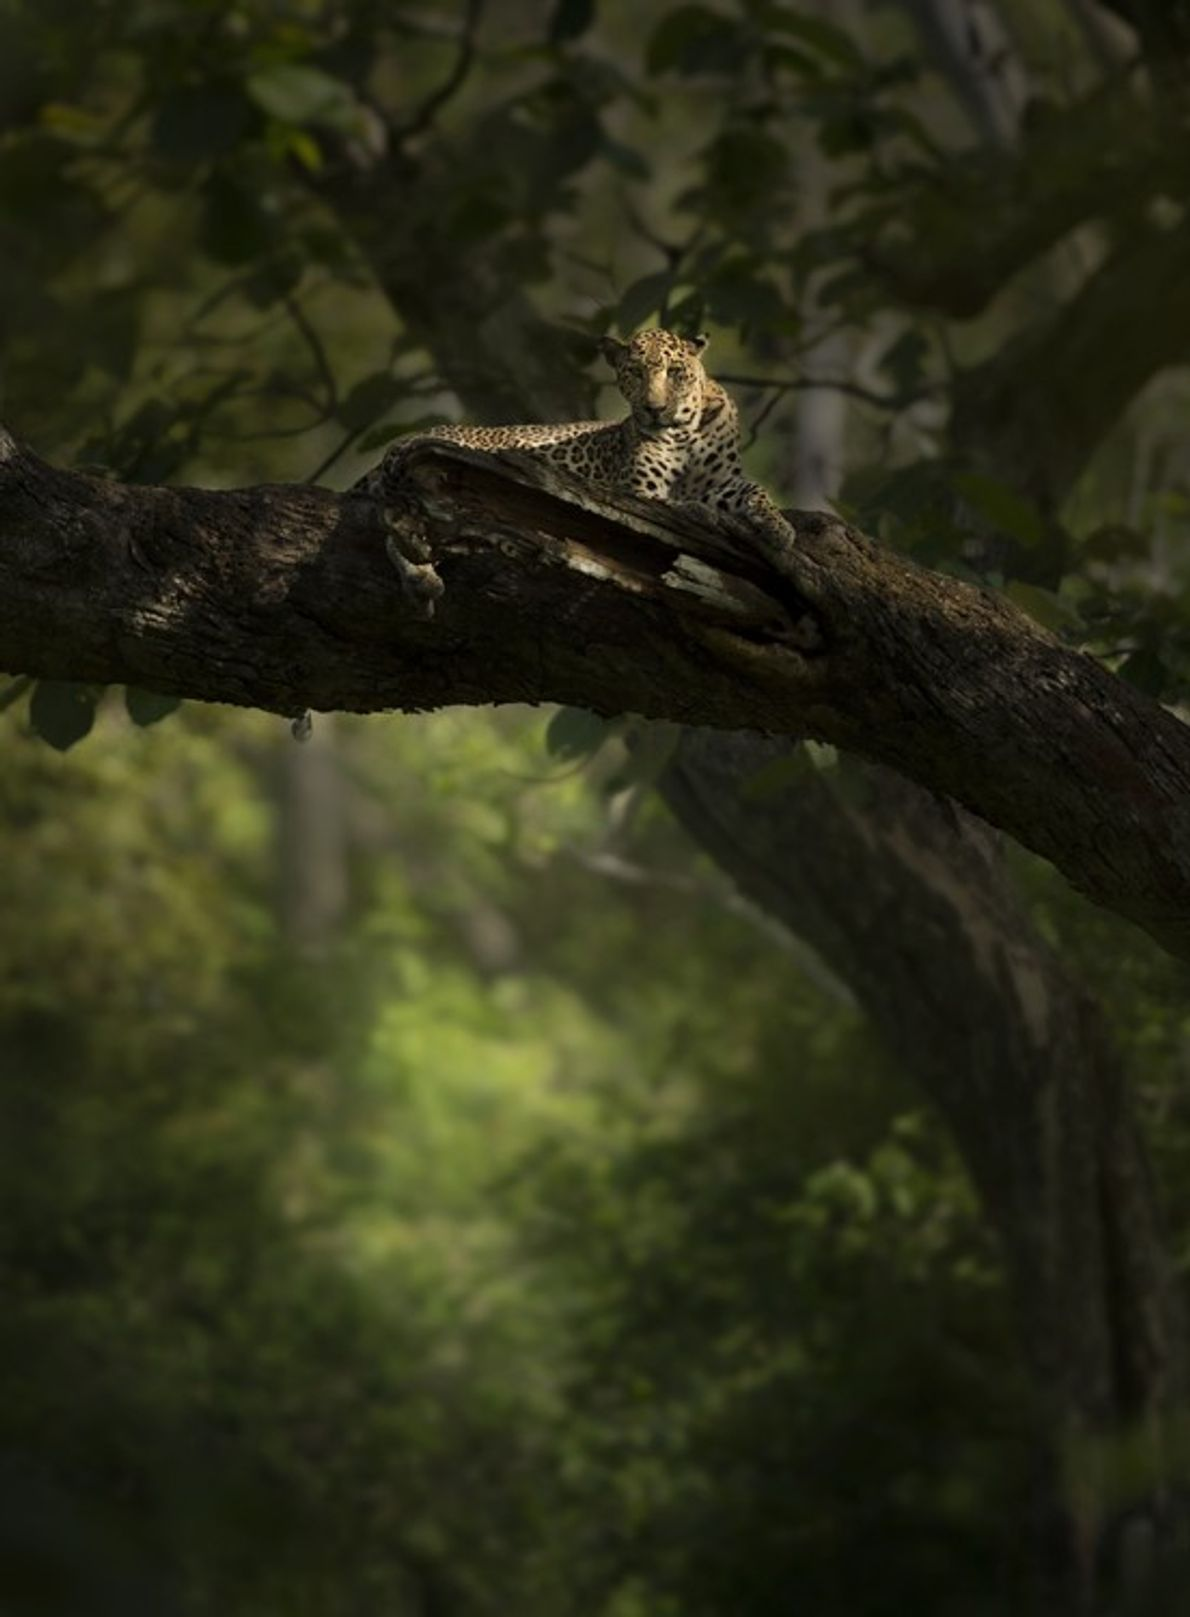 A male leopard relaxes high up on a tree branch. Accomplished climbers, leopards often haul kills ...